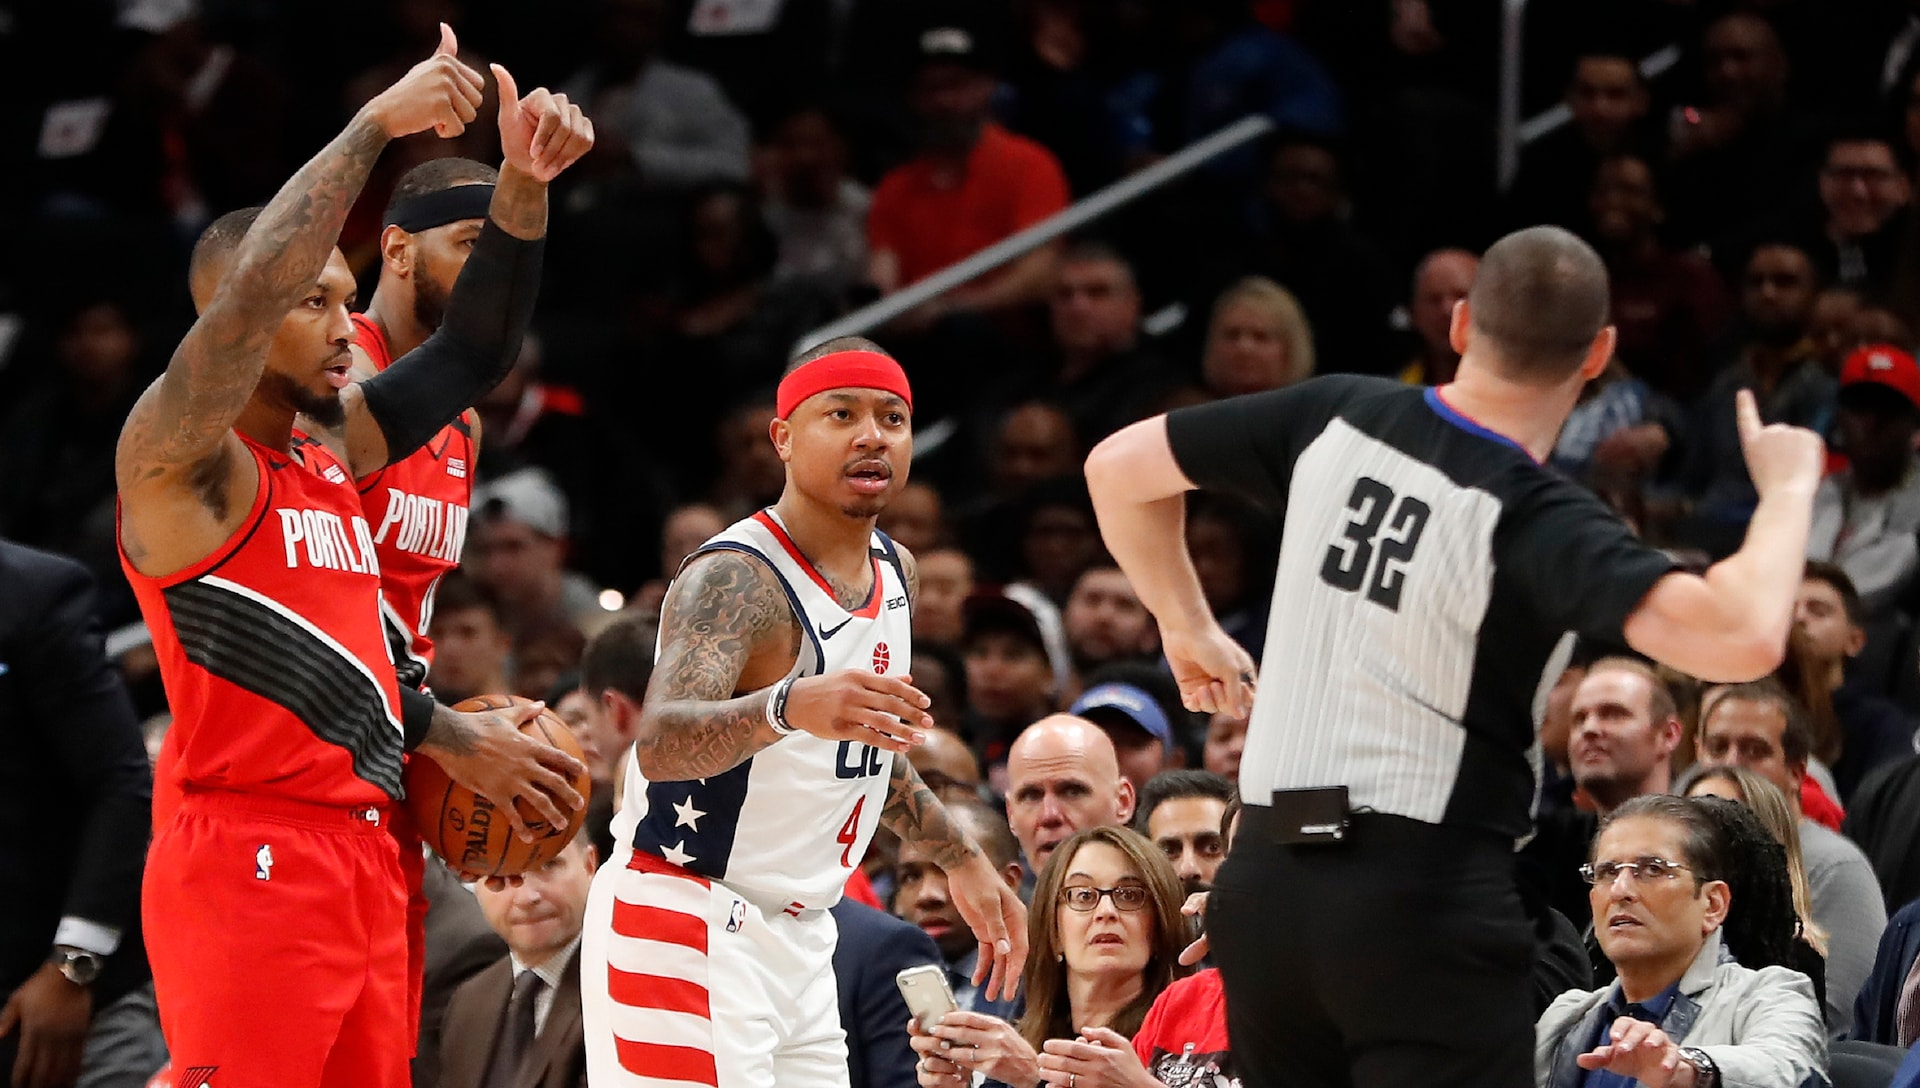 Wizards guard Isaiah Thomas fined $25,000 for making contact with official